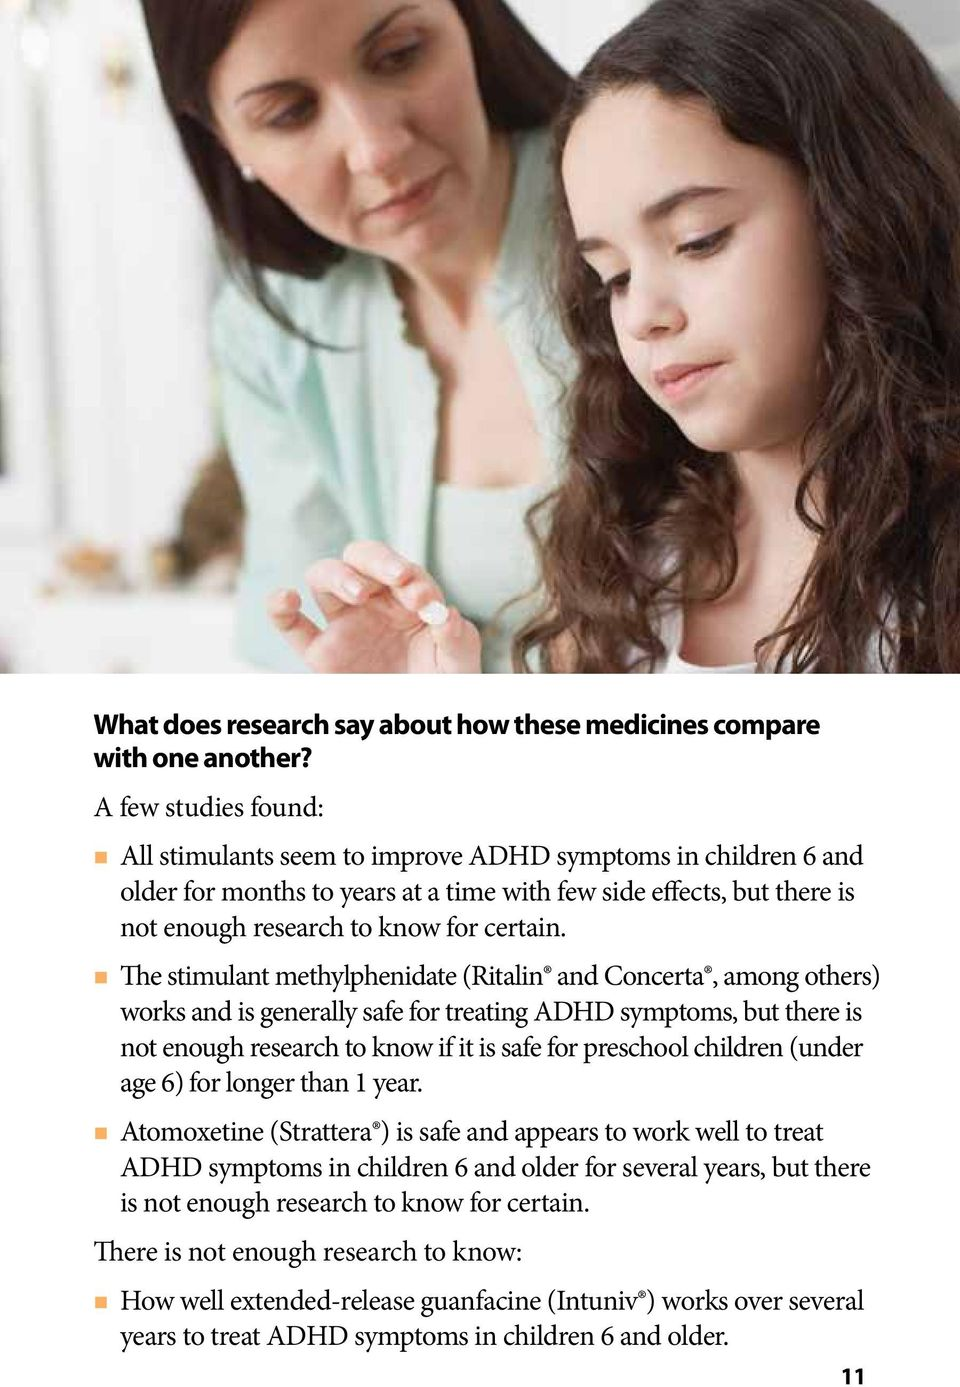 The stimulant methylphenidate (Ritalin and Concerta, among others) works and is generally safe for treating ADHD symptoms, but there is not enough research to know if it is safe for preschool